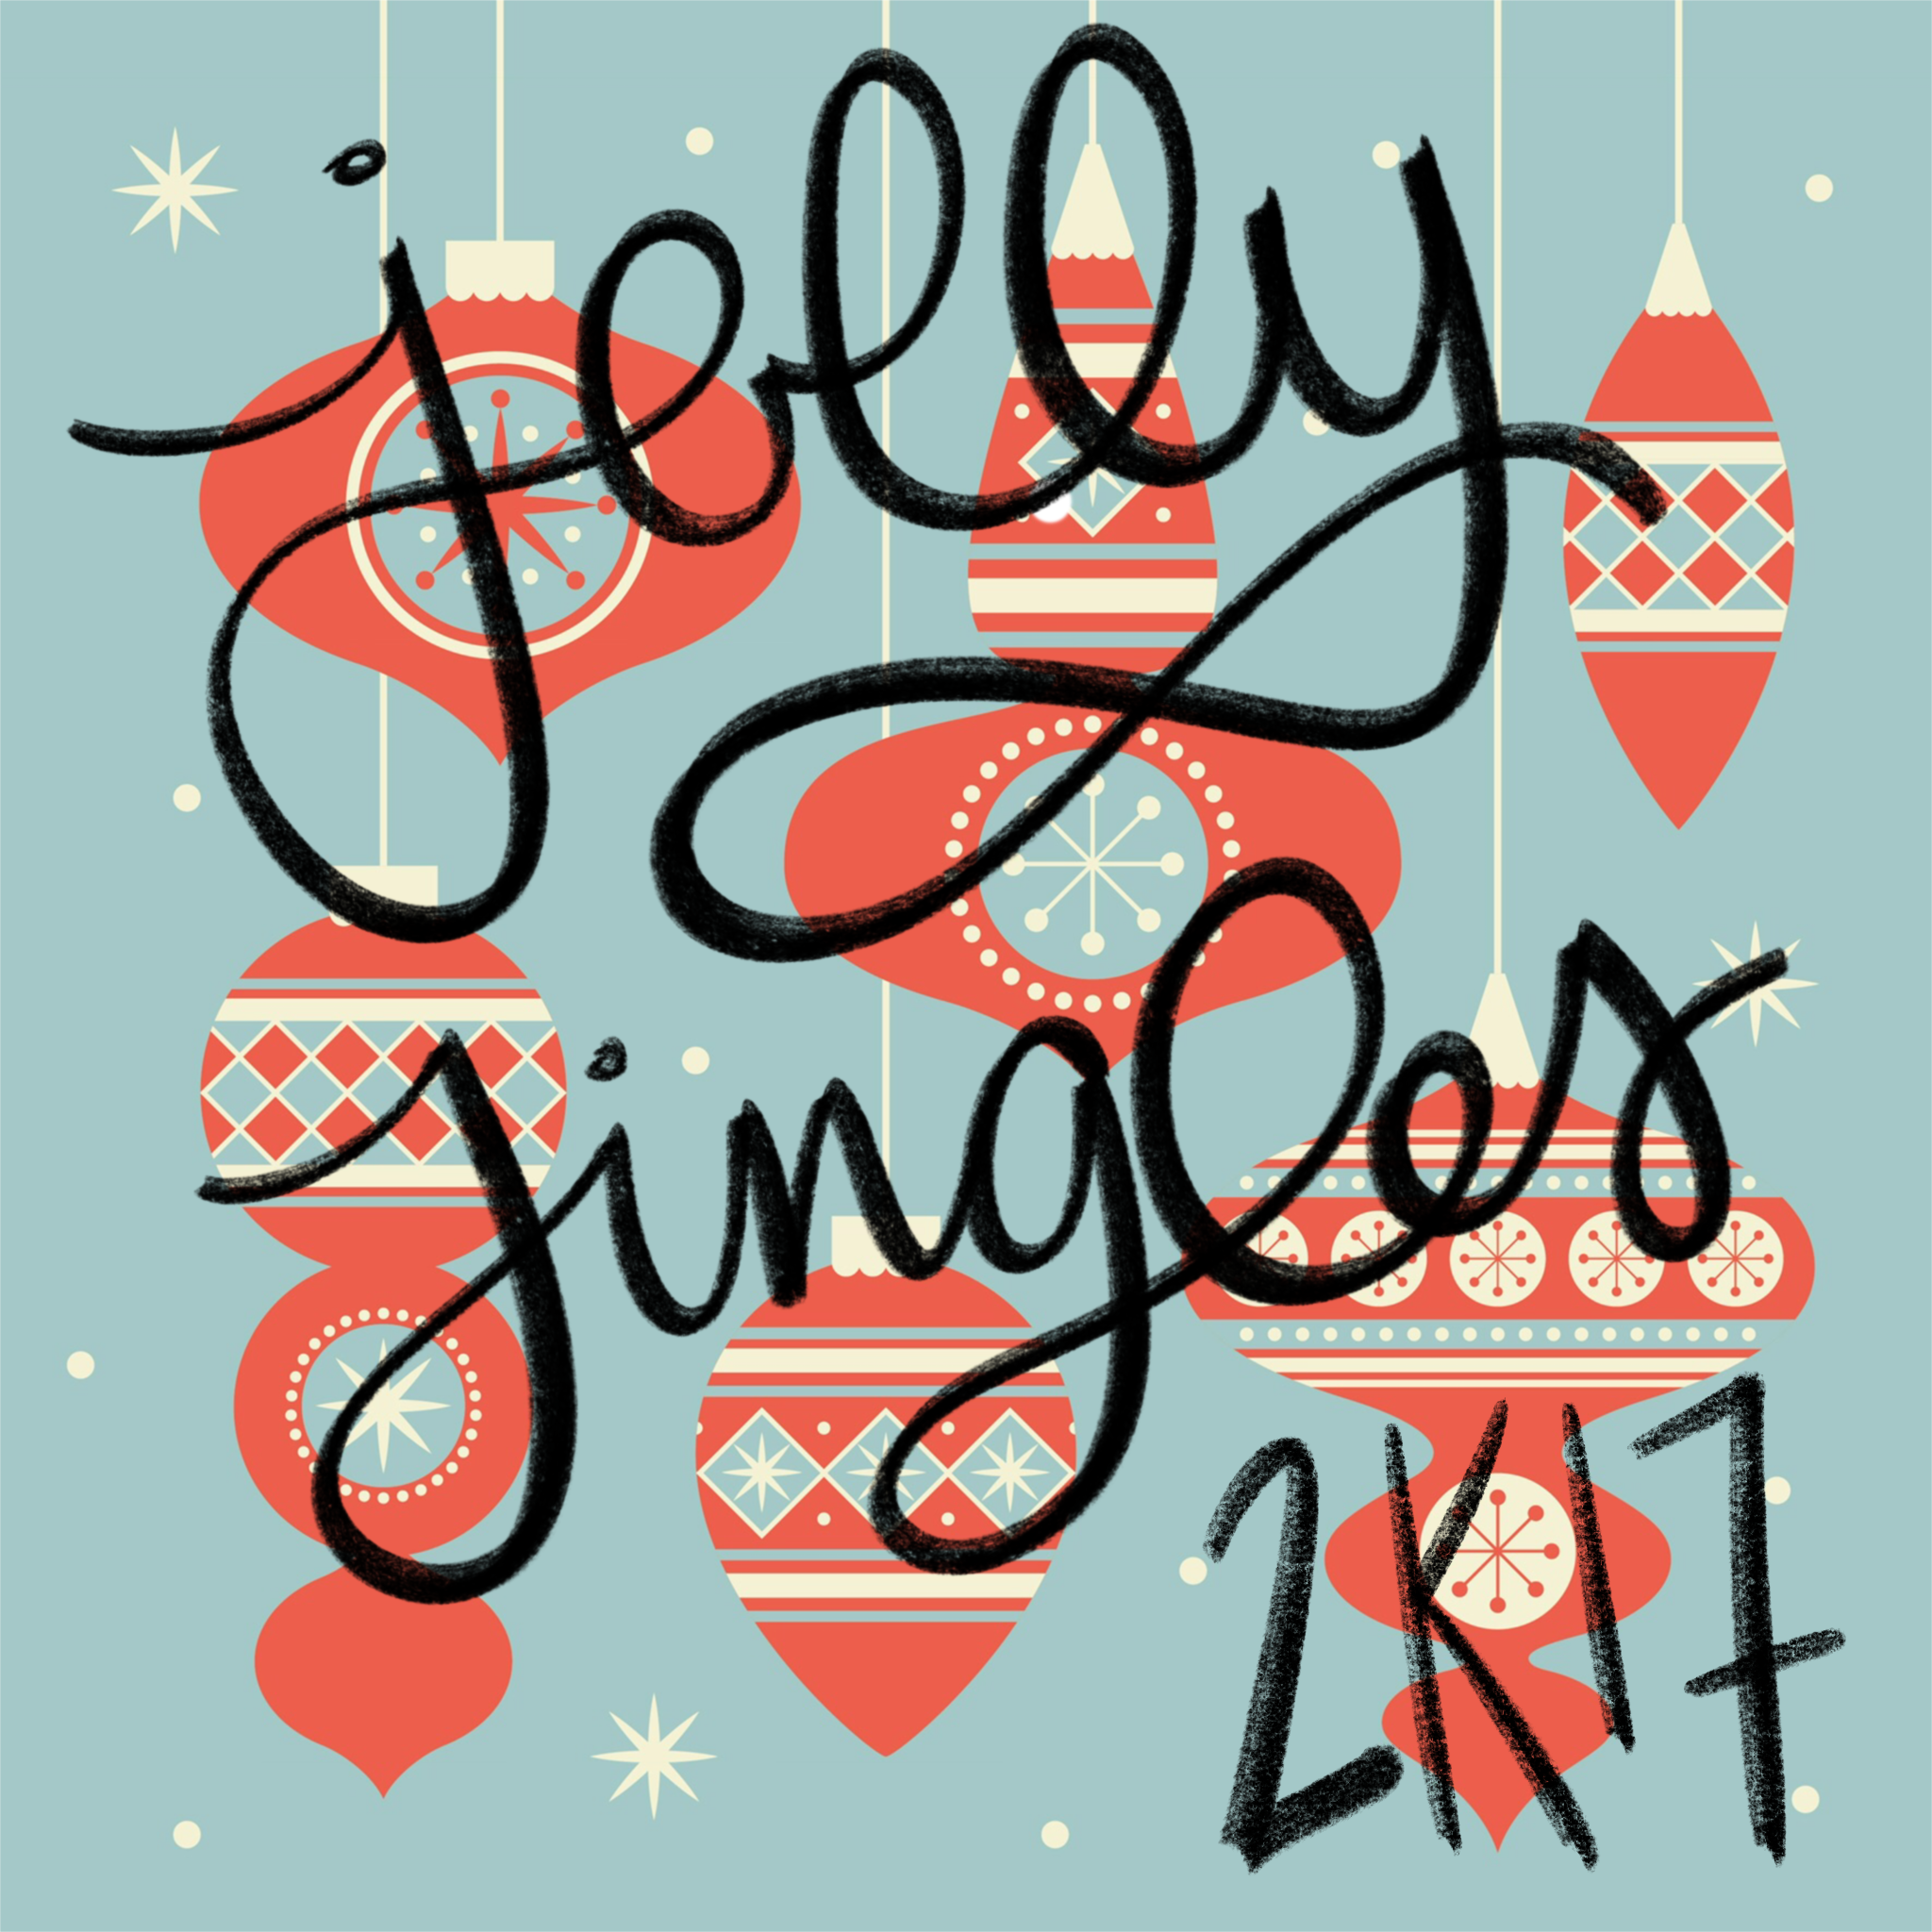 christmas ornament background with jolly jingles 2k17 in chalky script